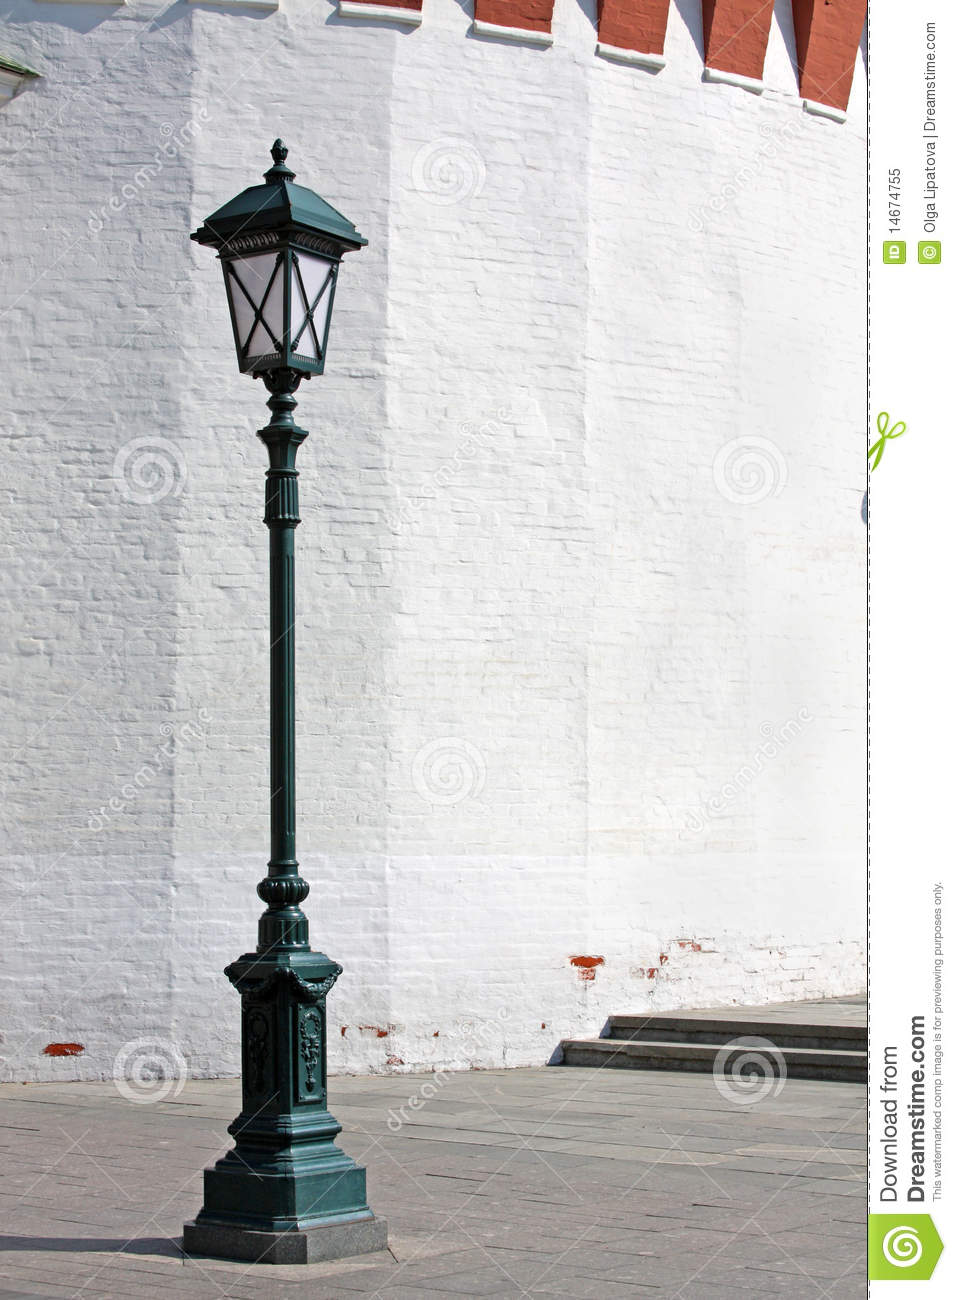 Antique Street Light R...